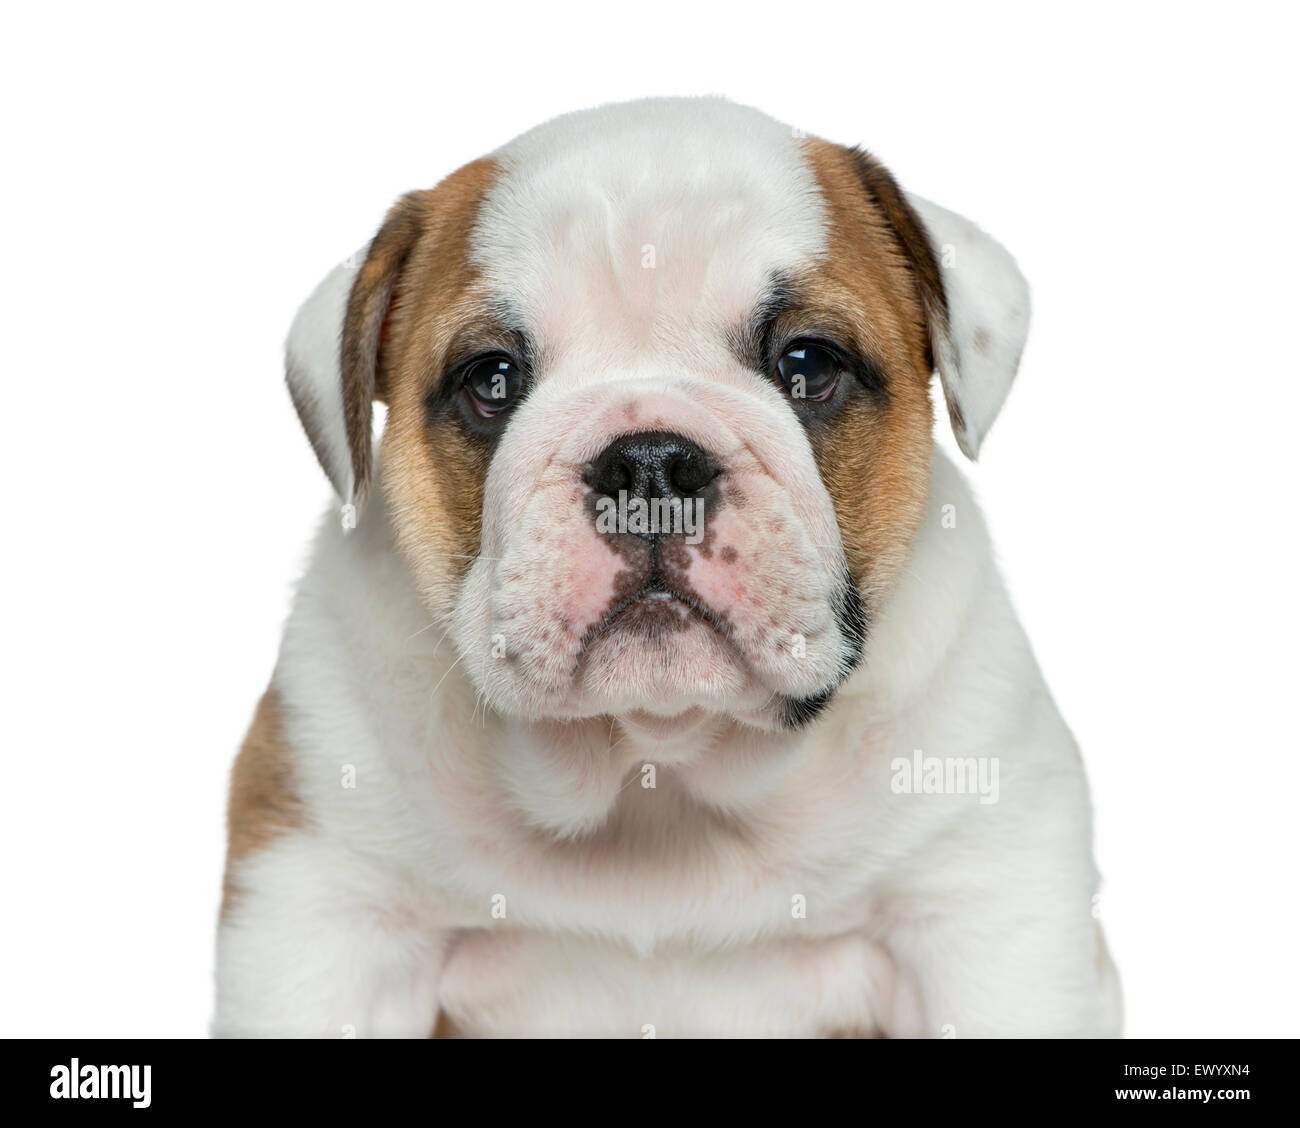 English bulldog puppy in front of white background - Stock Image